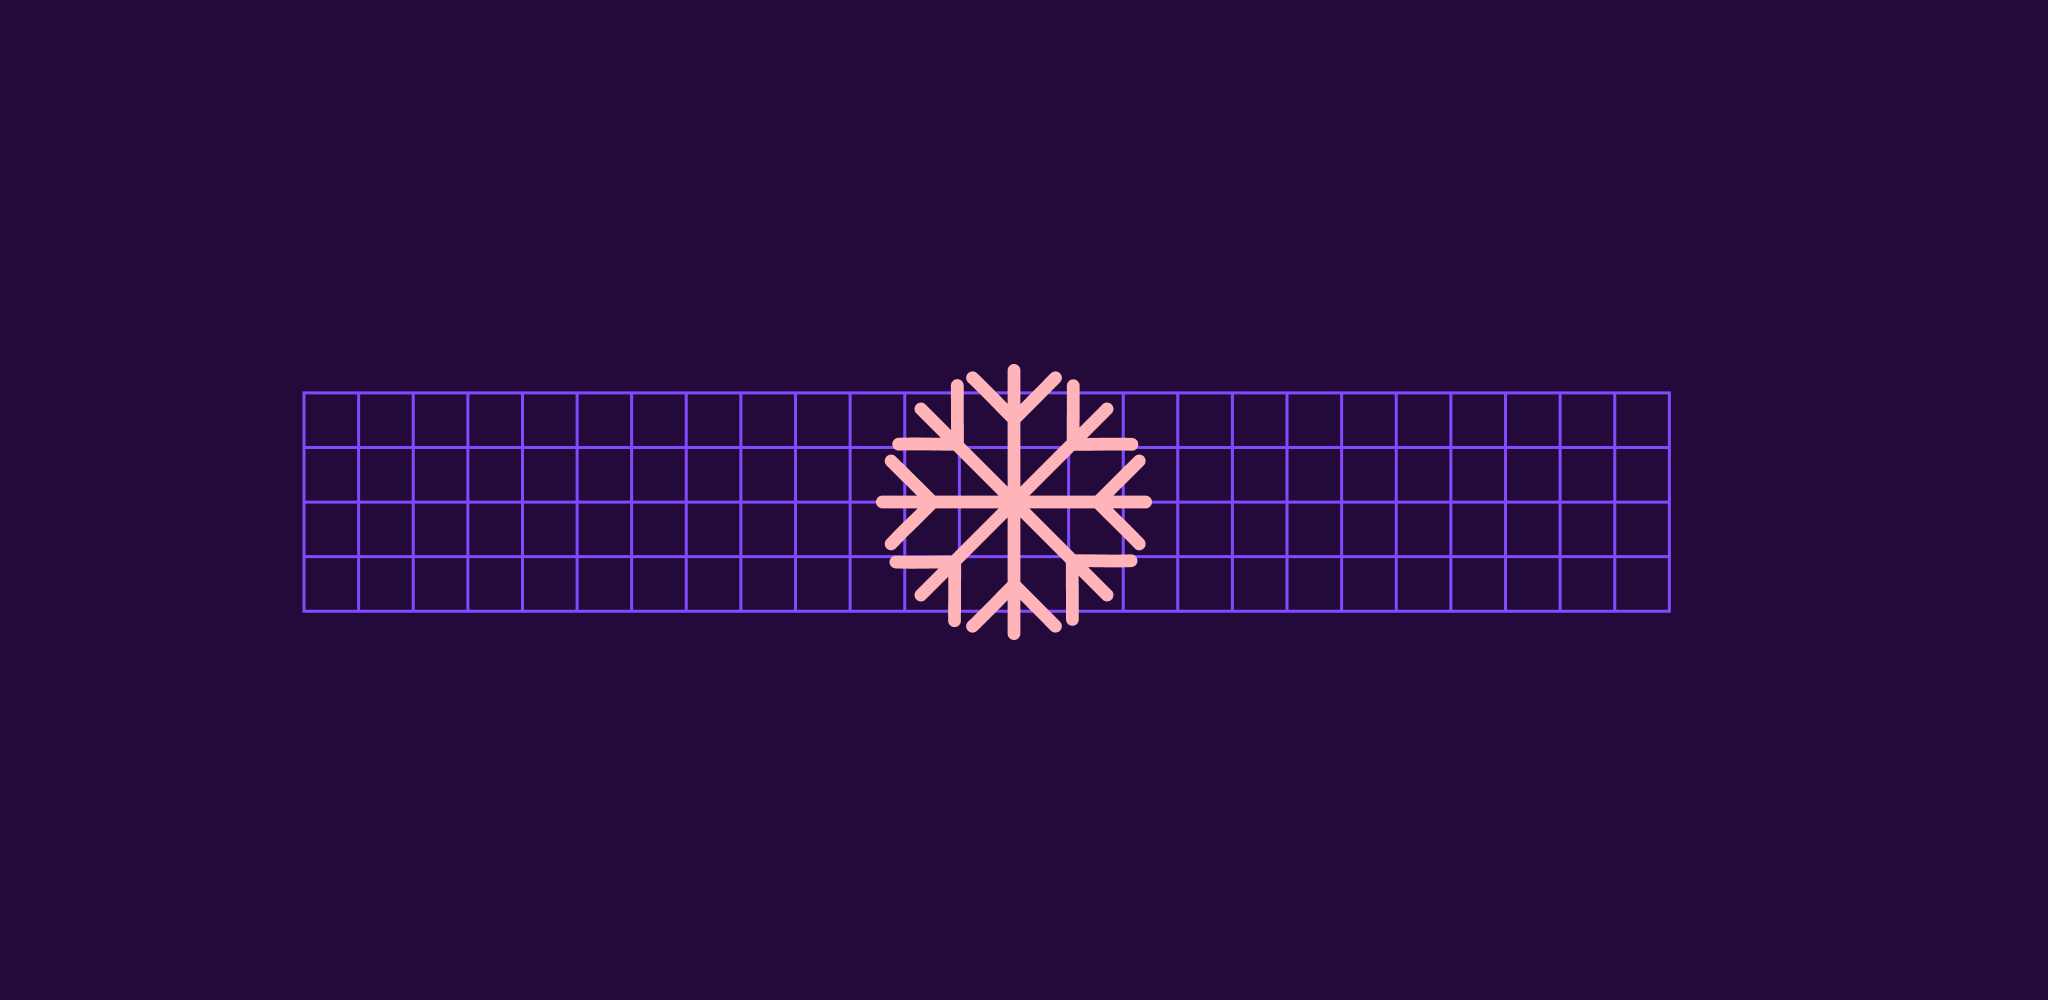 assets/static/images/blog/cover-snowflake.png